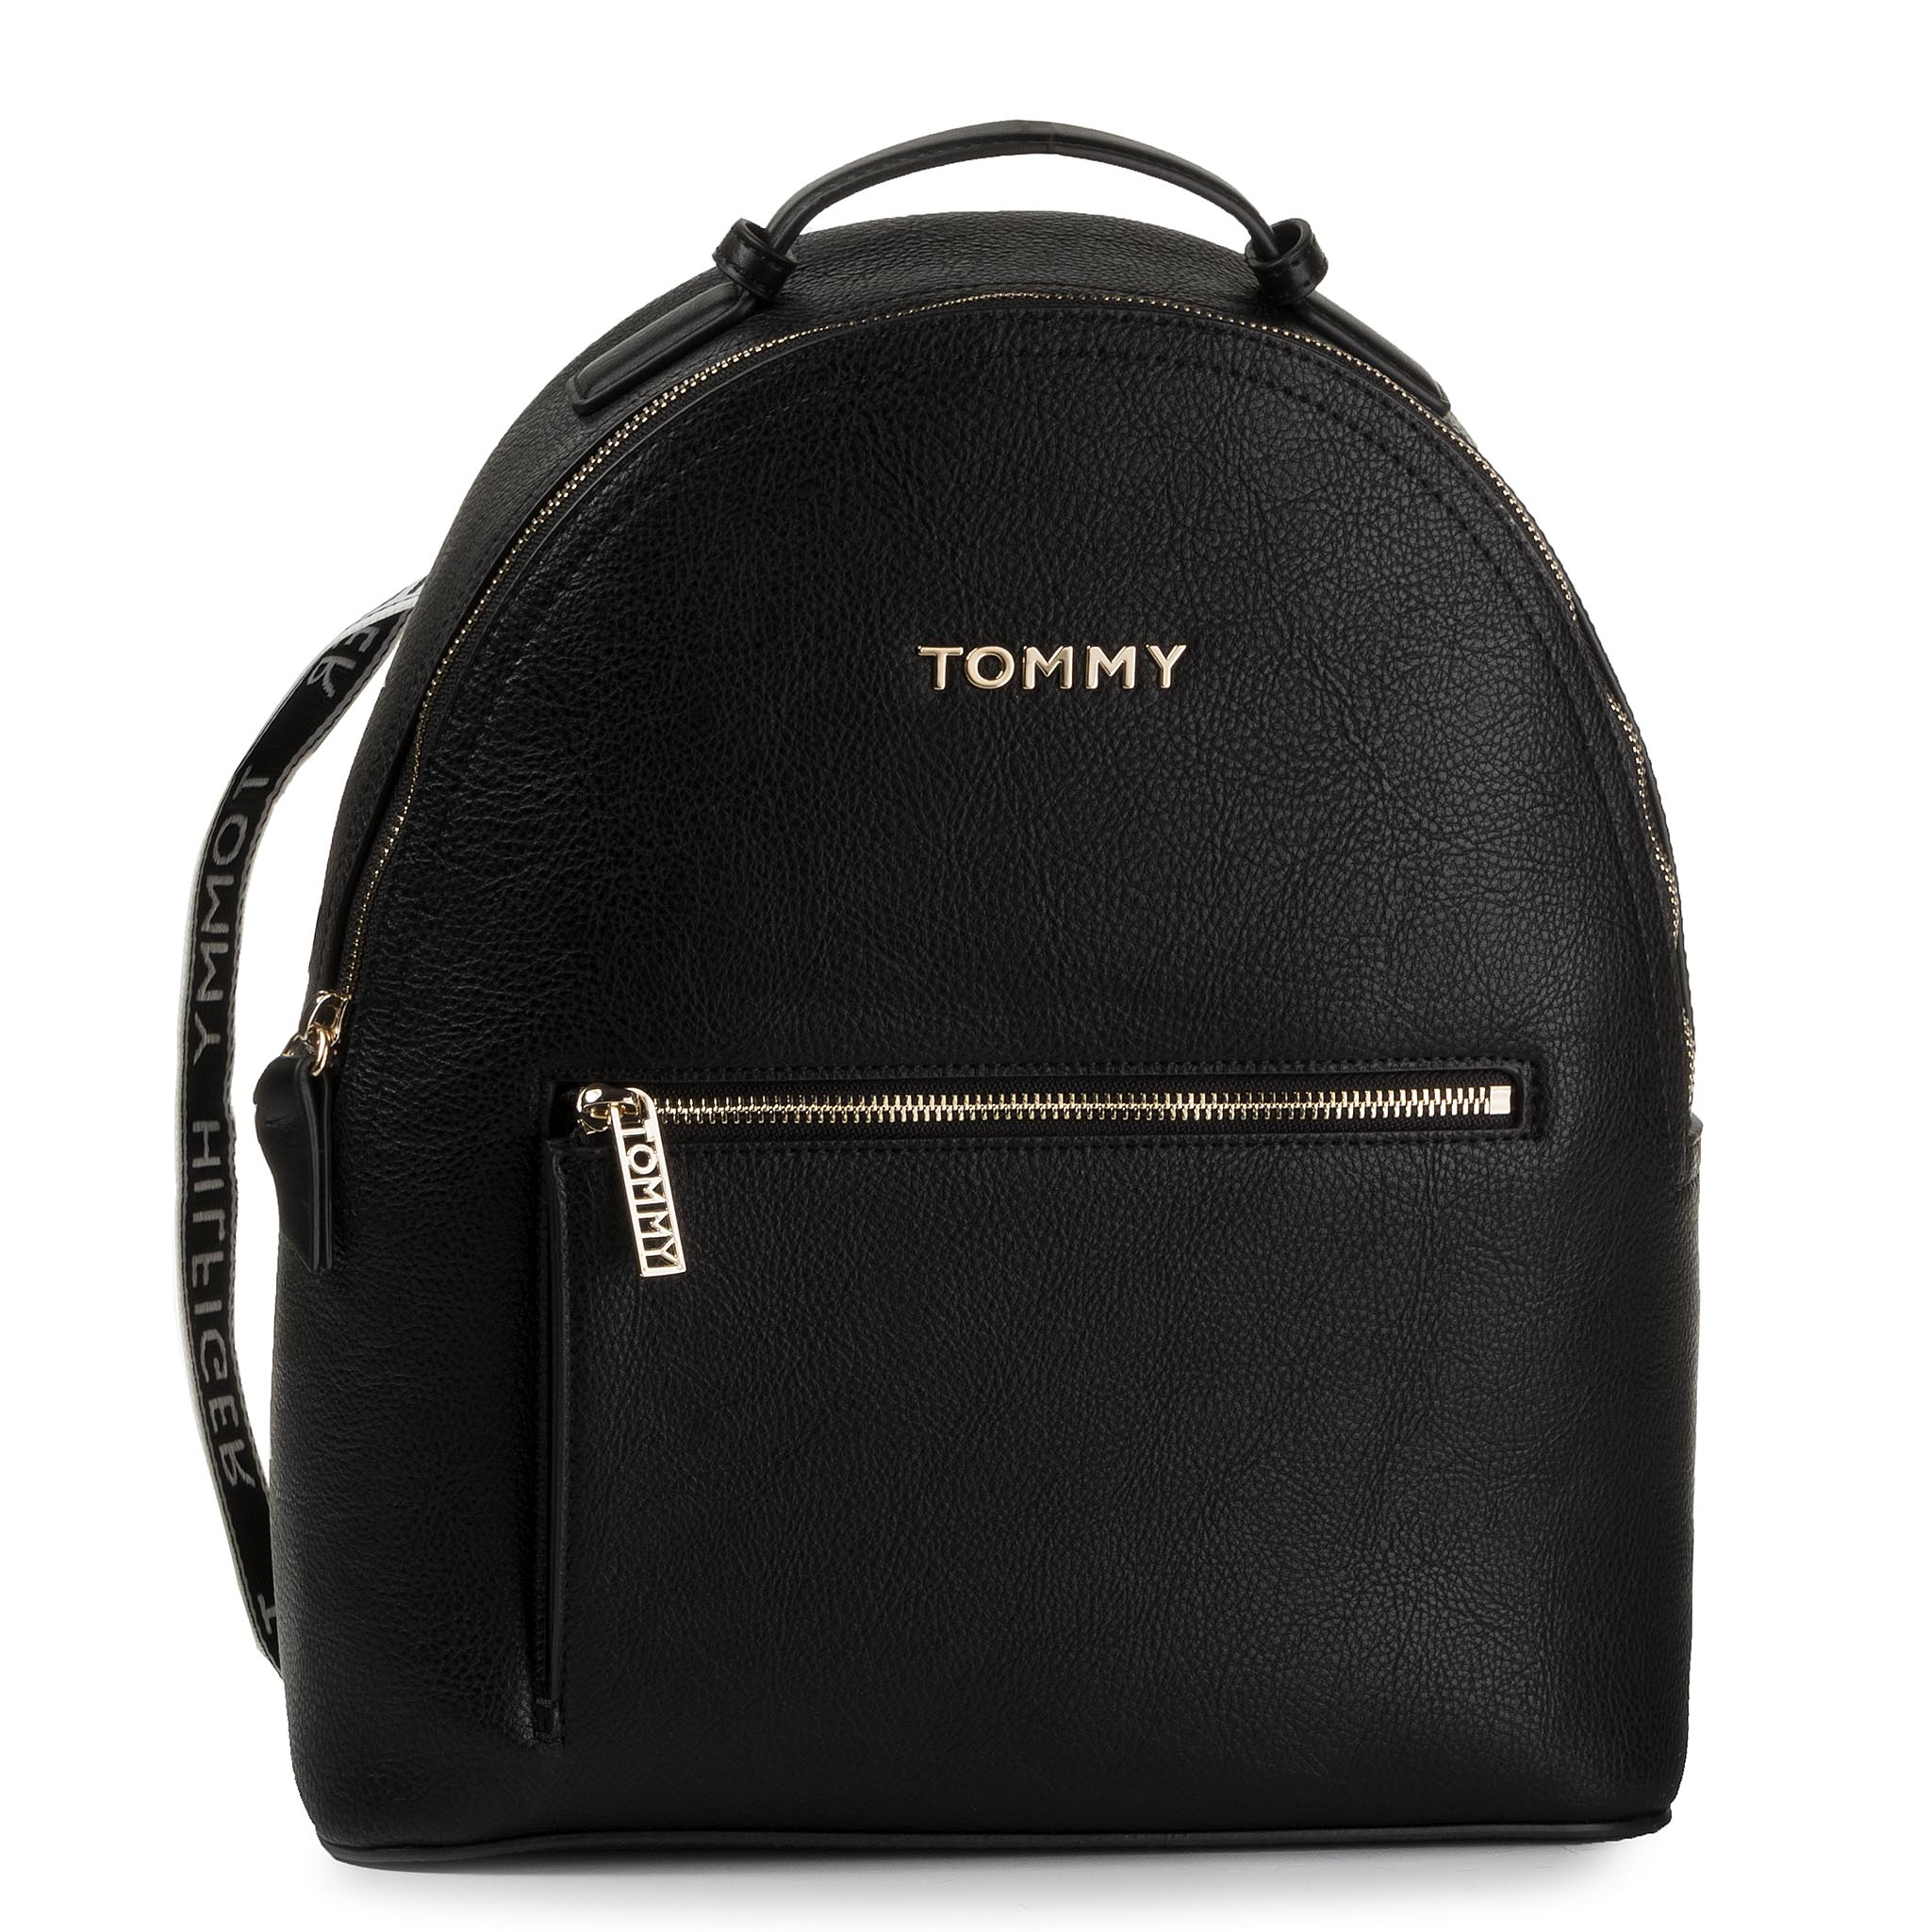 Rucsac Tommy Hilfiger - Iconic Tommy Backpack Aw0aw08106 Bds imagine epantofi.ro 2021